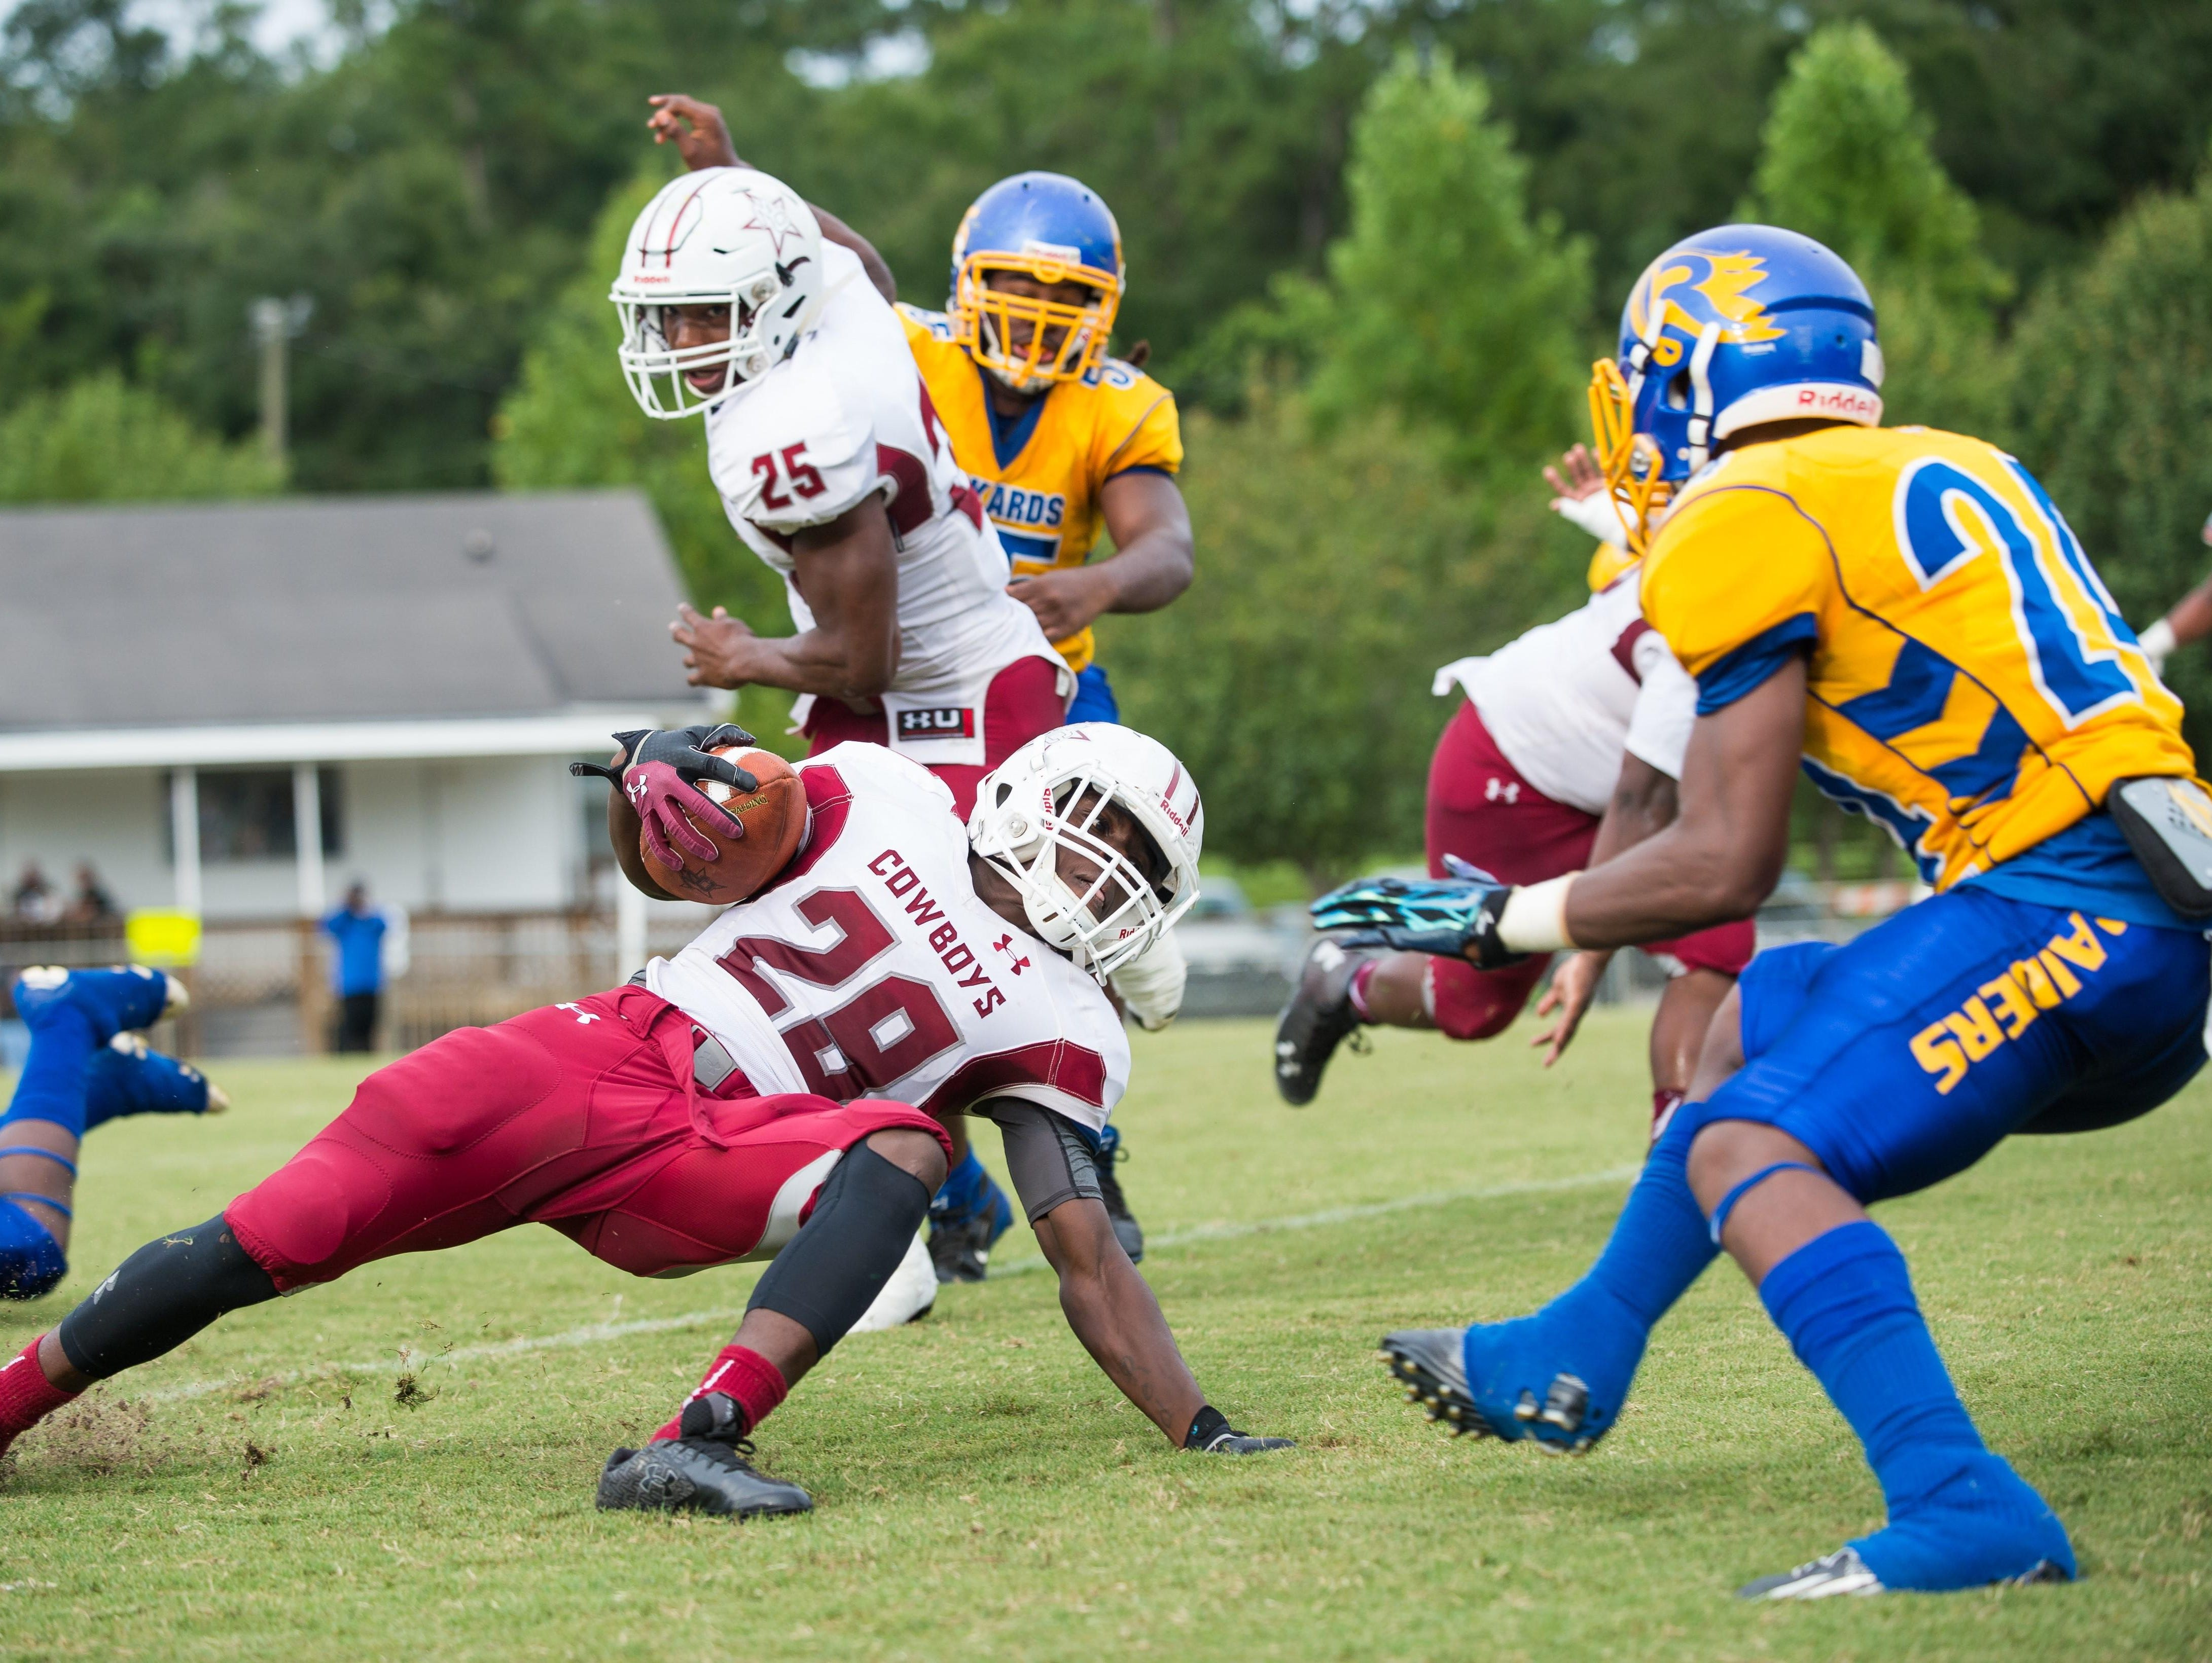 Madison County running back Patrick Brown has gained 1,122 yards on the ground this season and the Cowboys have won eight games in a row and are a win away from reaching the state semifinals.